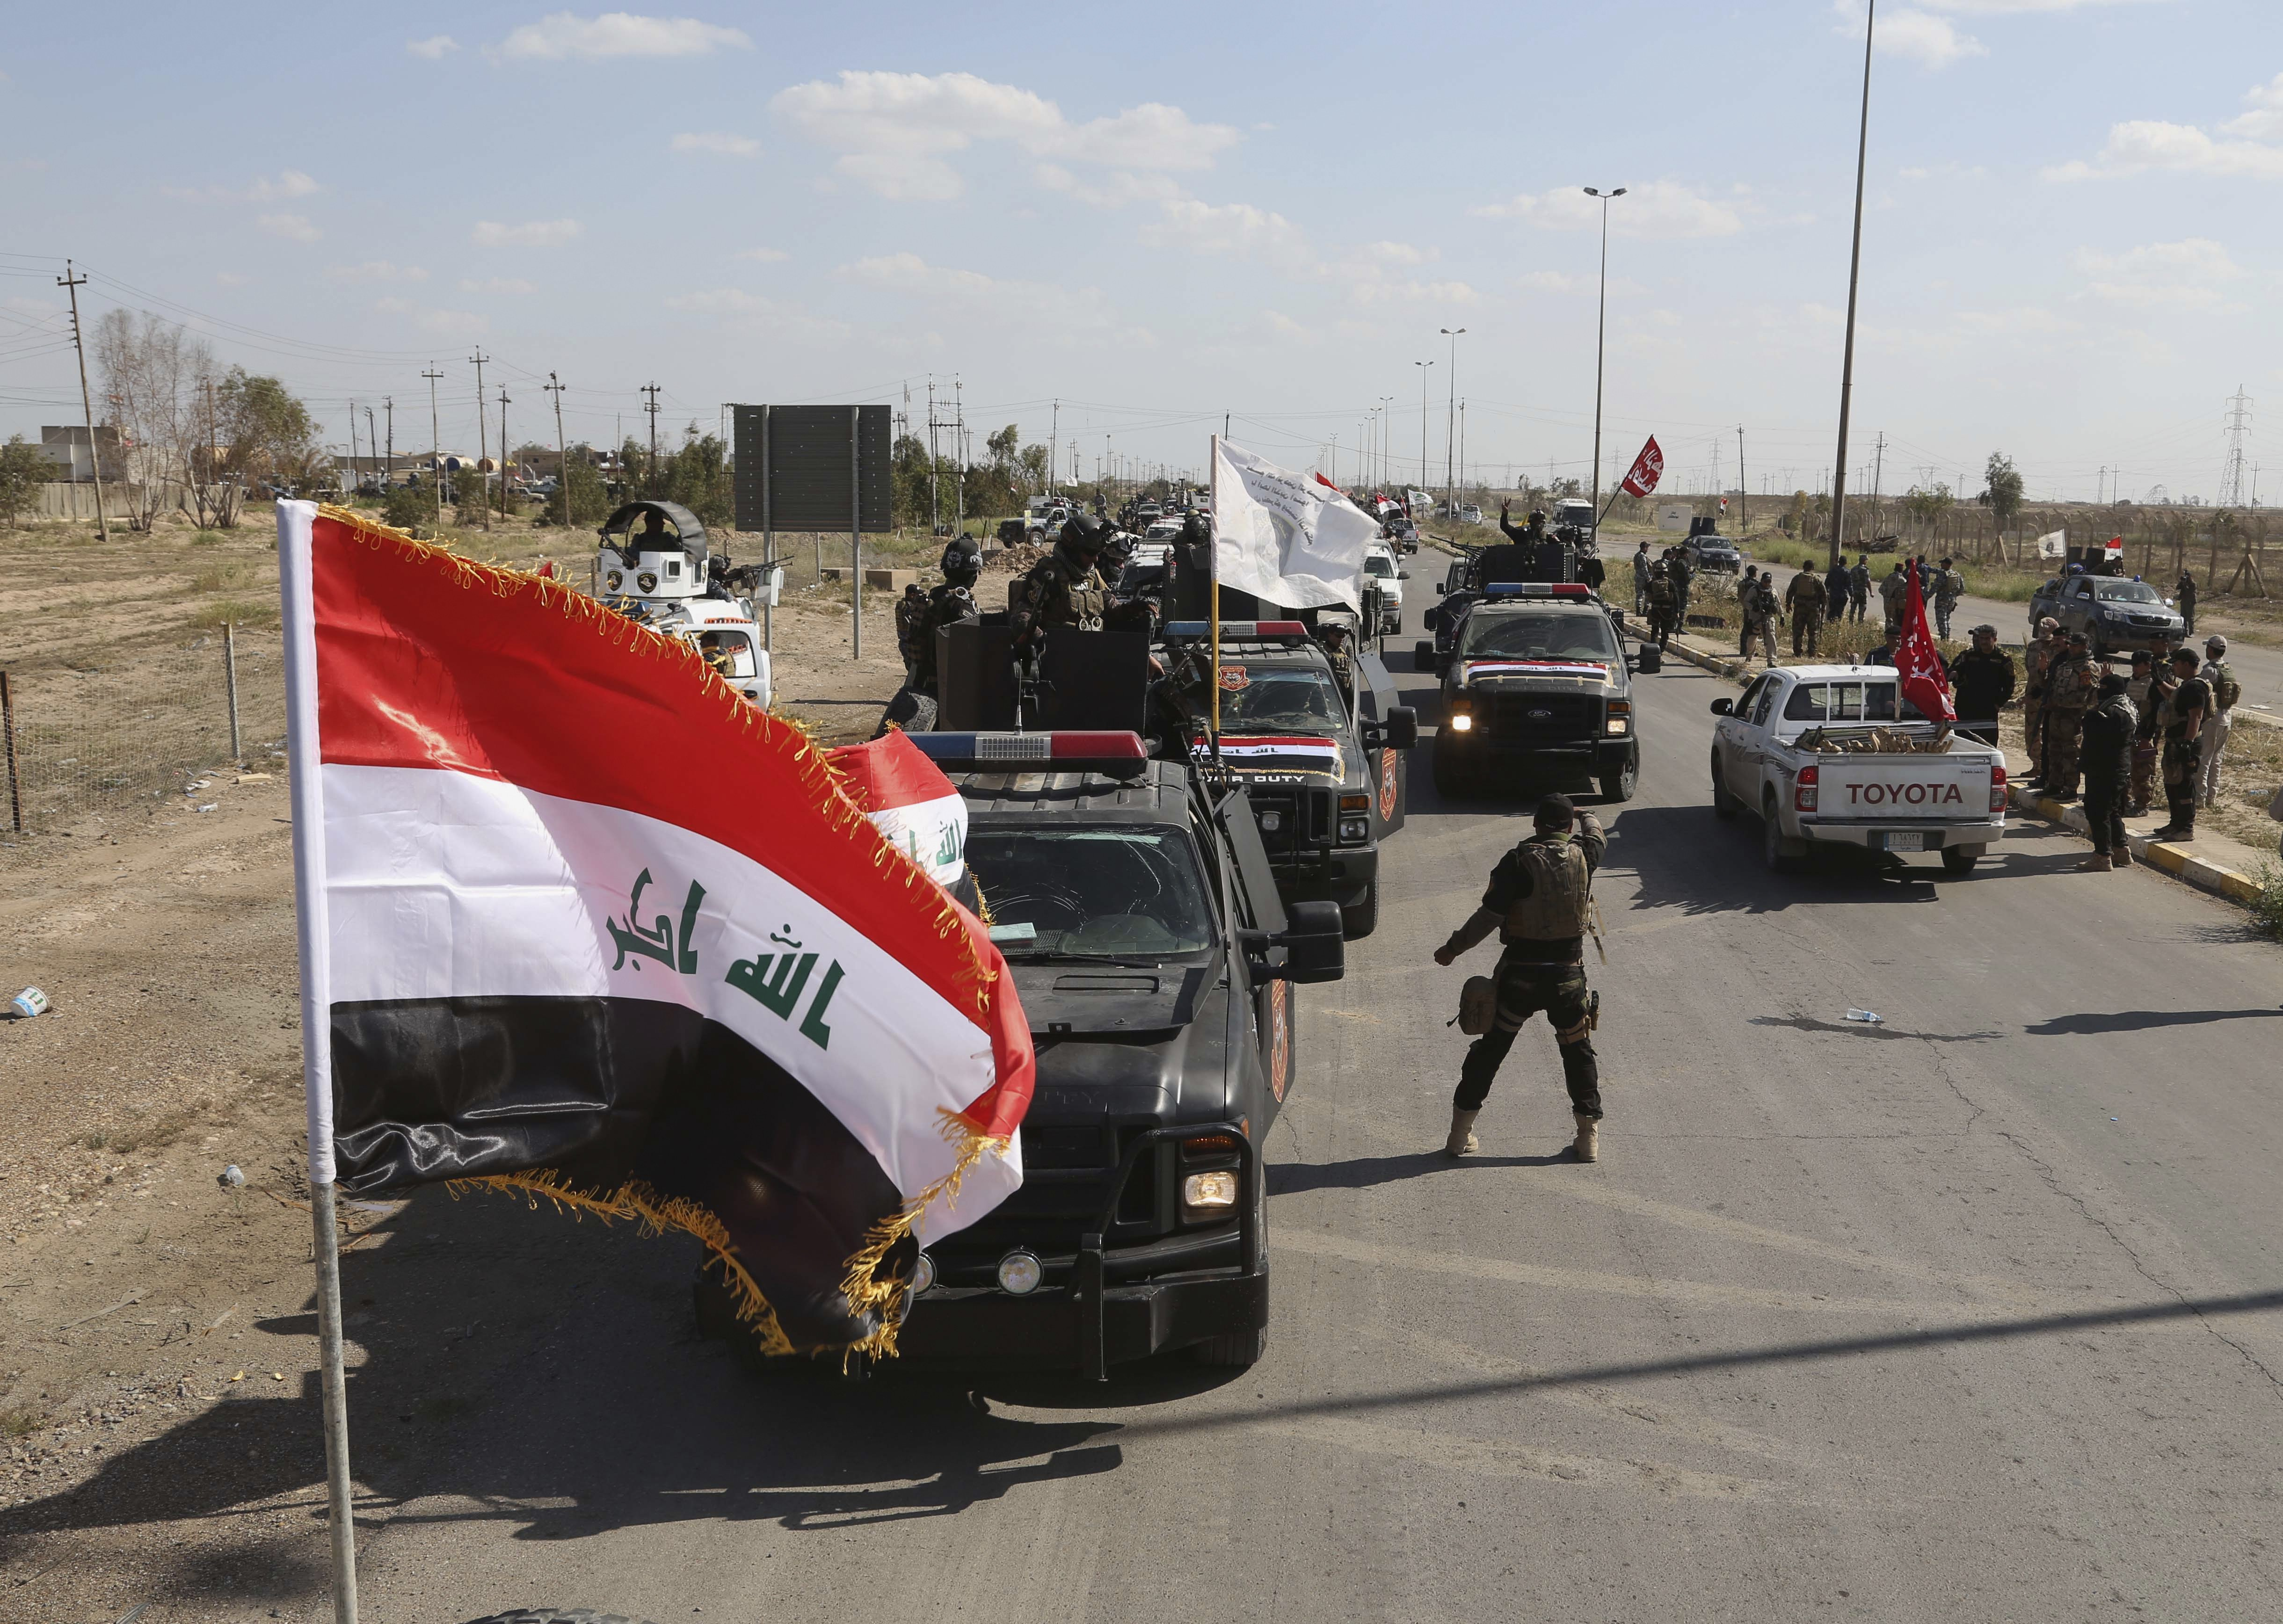 Iraqi security forces prepare to attack ISIS's positions in Tikrit, north of Baghdad, Iraq, on March 26, 2015